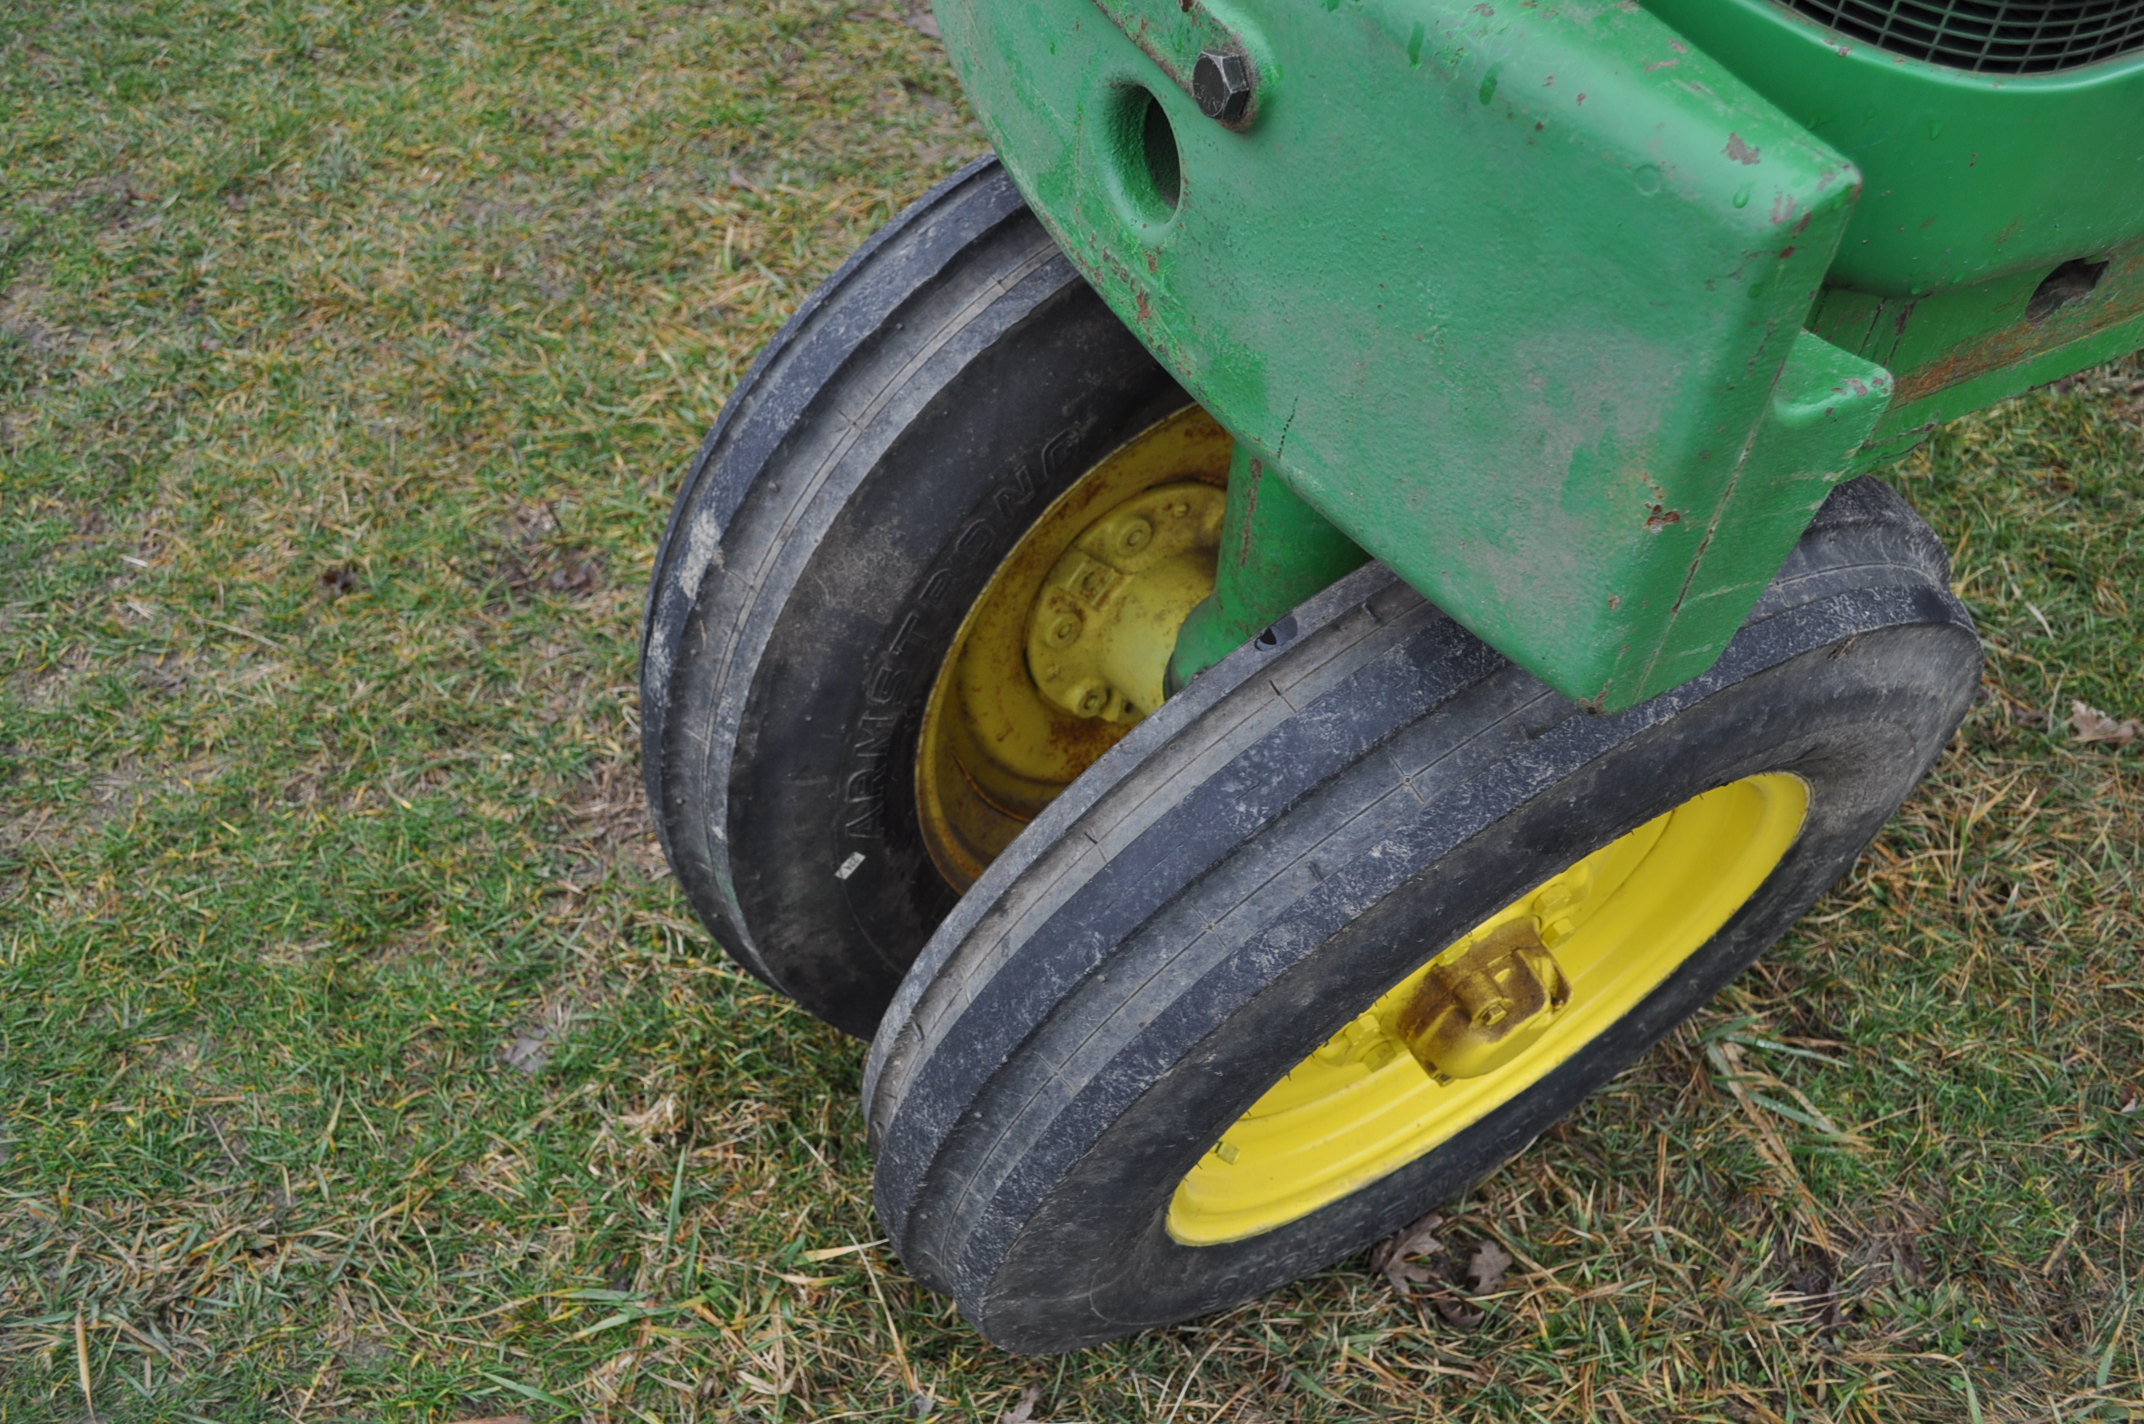 1942 John Deere Styled A, New 12.4-38 rear tires, narrow front, 540 pto - Image 5 of 15